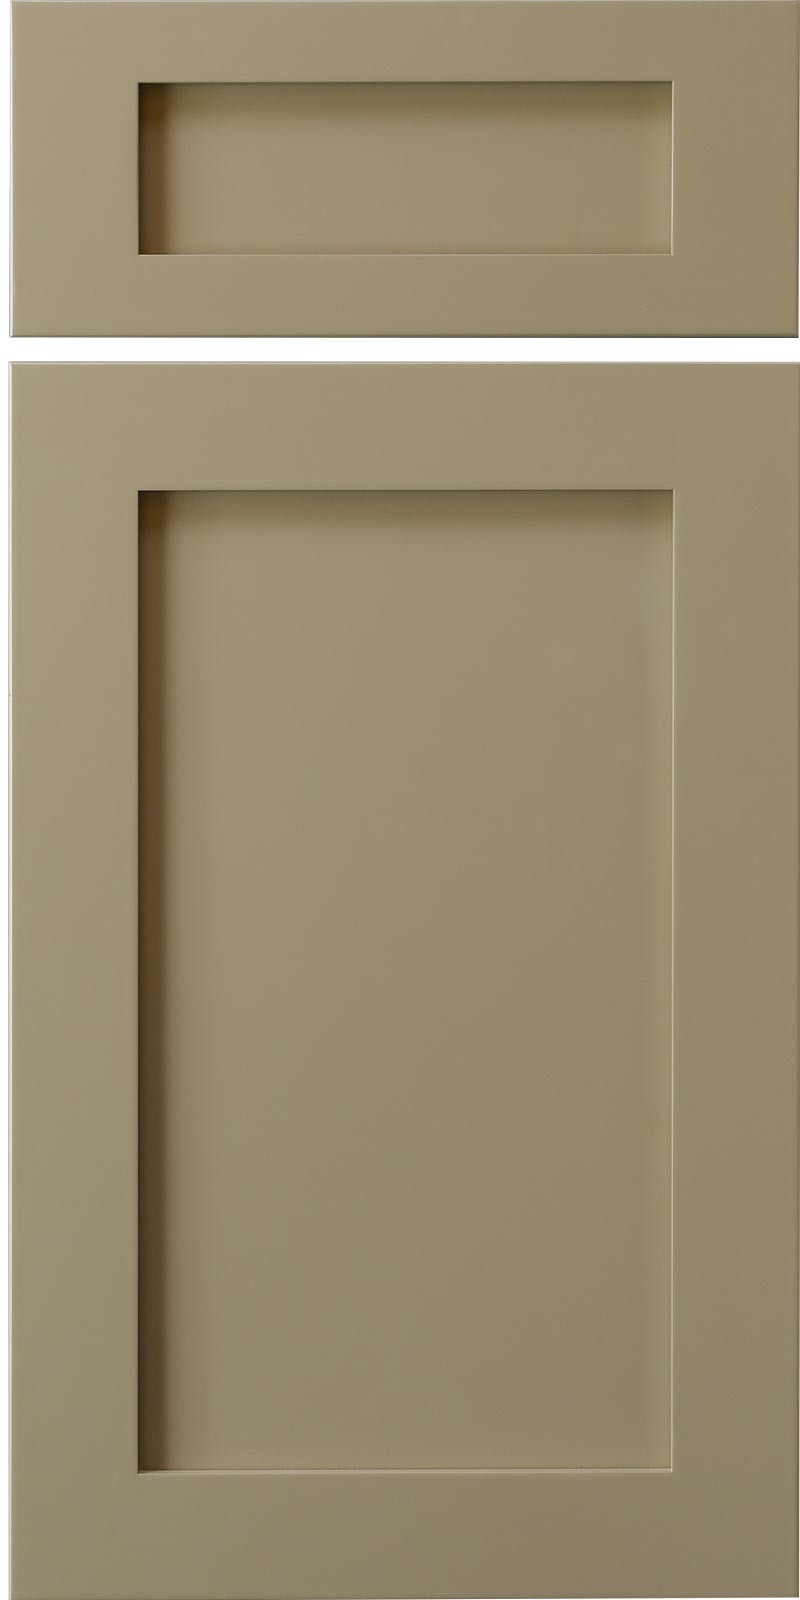 Medium Density Fiberboard Door ~ Albany medium density fiberboard materials cabinet